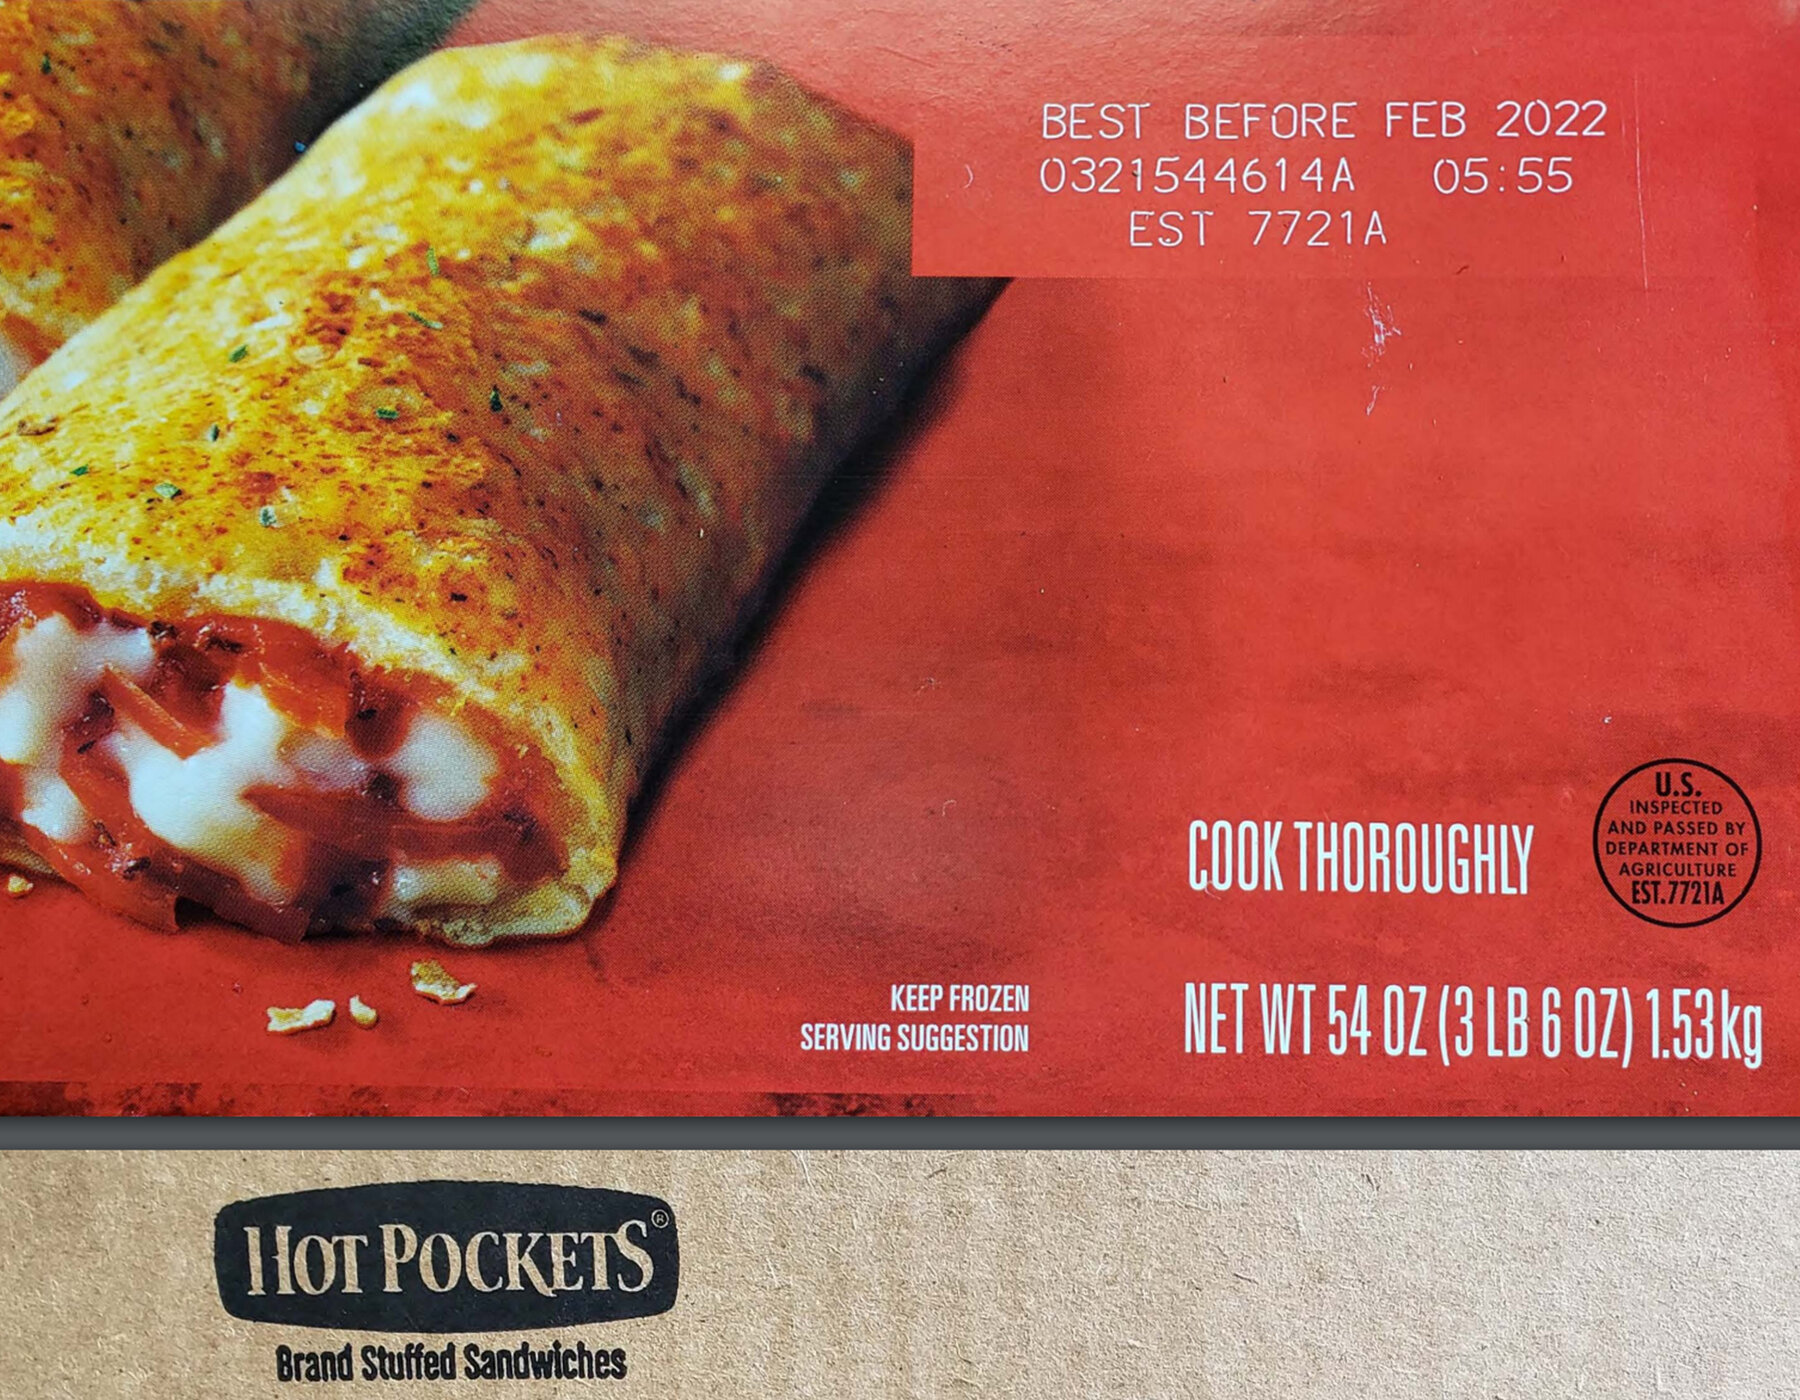 some hot pockets recalled over possible